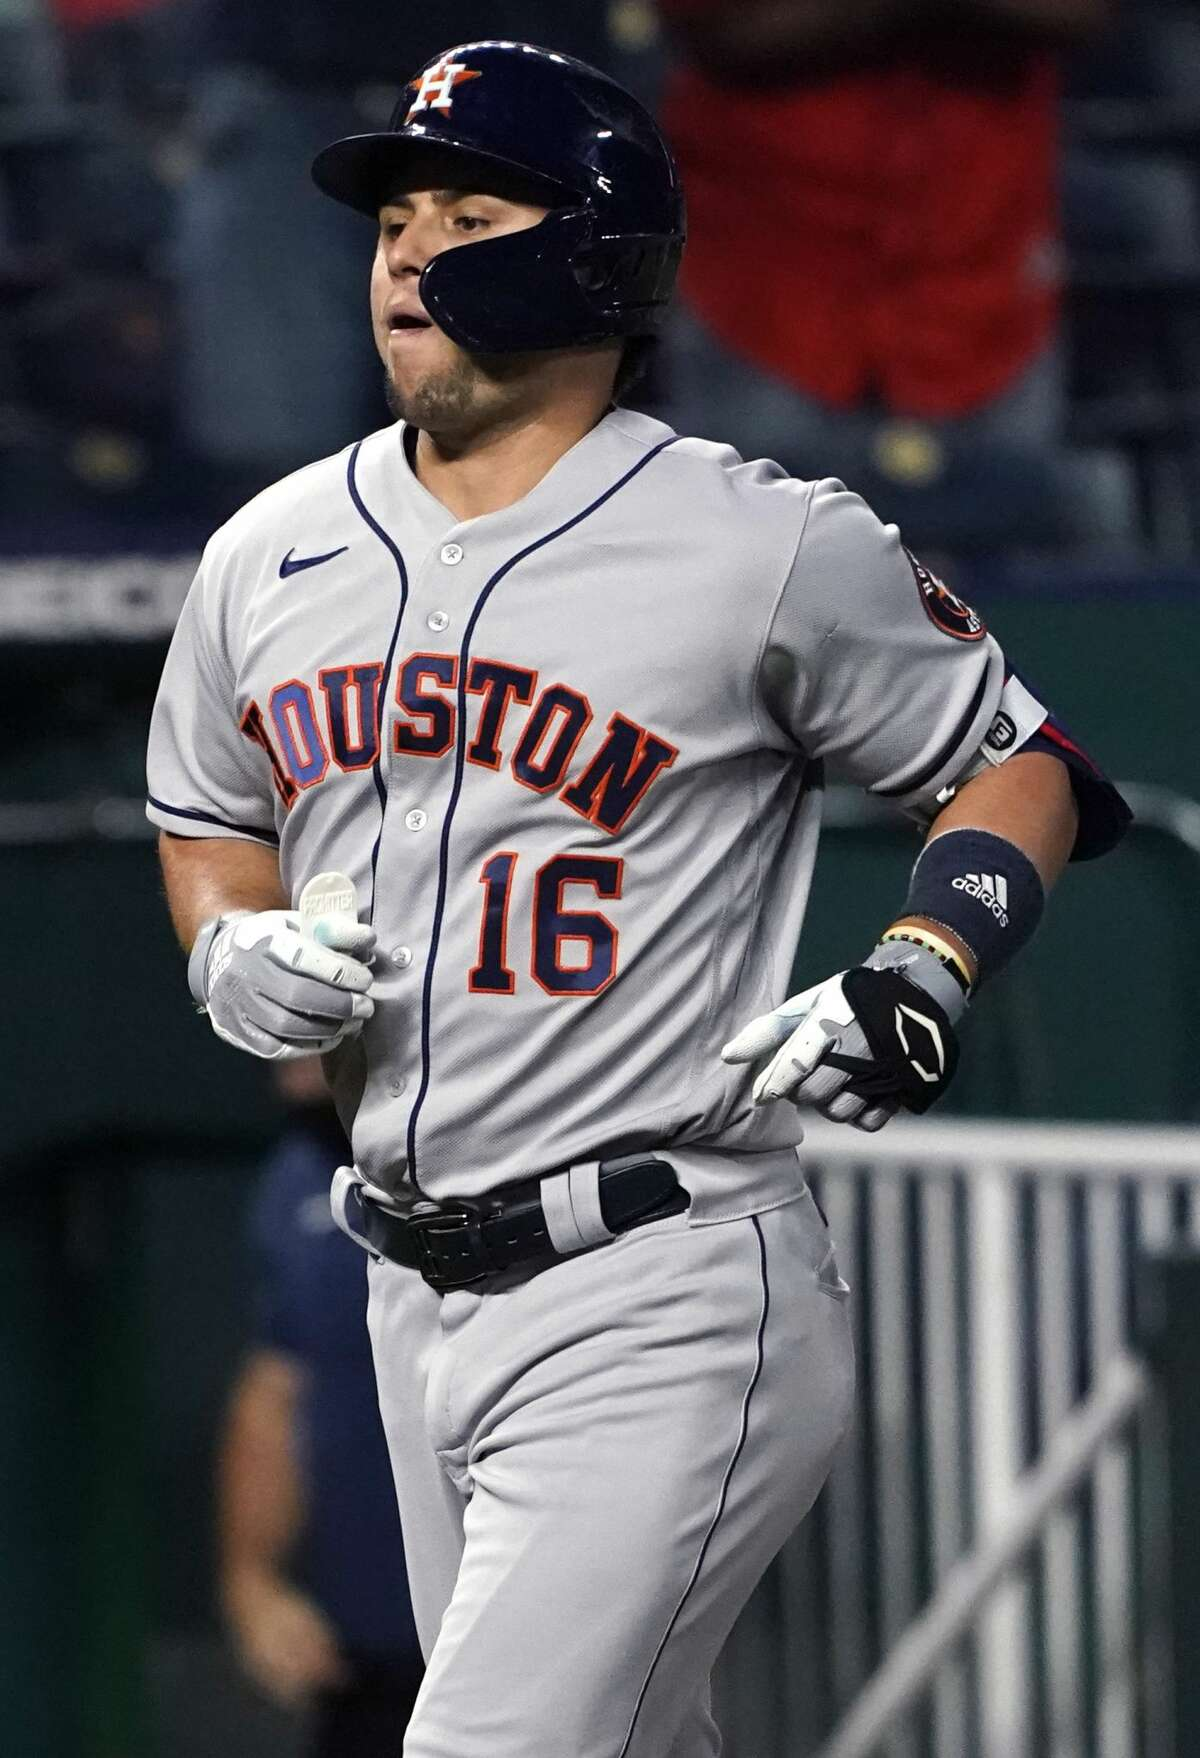 KANSAS CITY, MISSOURI - AUGUST 16: Aledmys Diaz #16 of the Houston Astros runs home after hitting a home run in the fifth inning against the Kansas City Royals at Kauffman Stadium on August 16, 2021 in Kansas City, Missouri. (Photo by Ed Zurga/Getty Images)